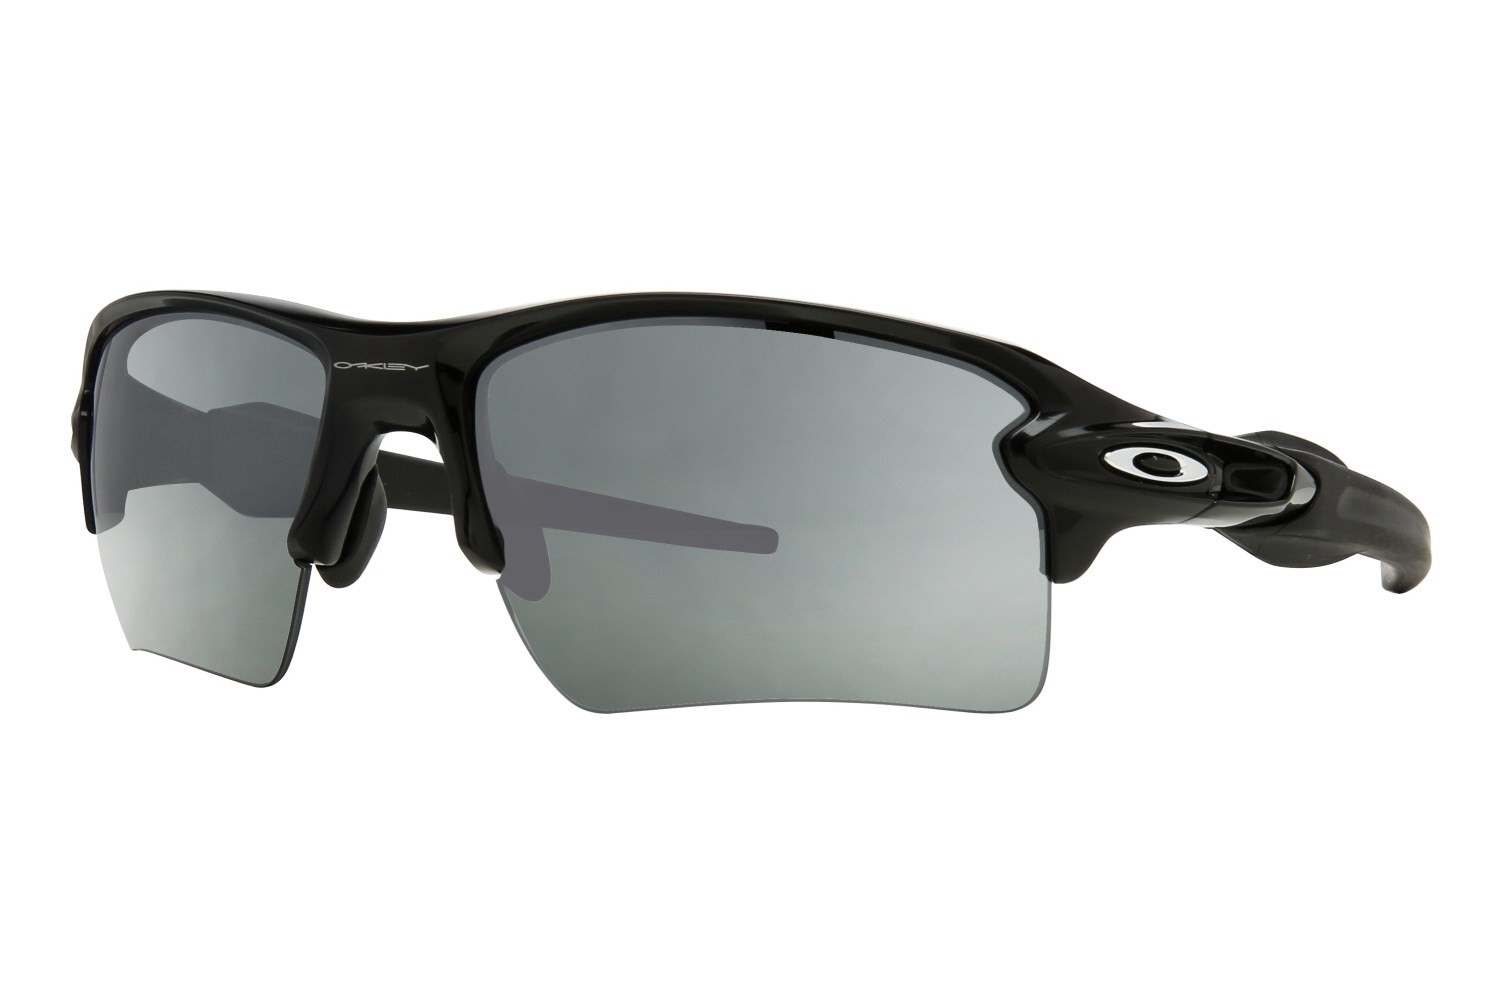 ba0877ad41 Review Oakley Flak 2.0 XL Polarized Sunglasses – Review Contact ...